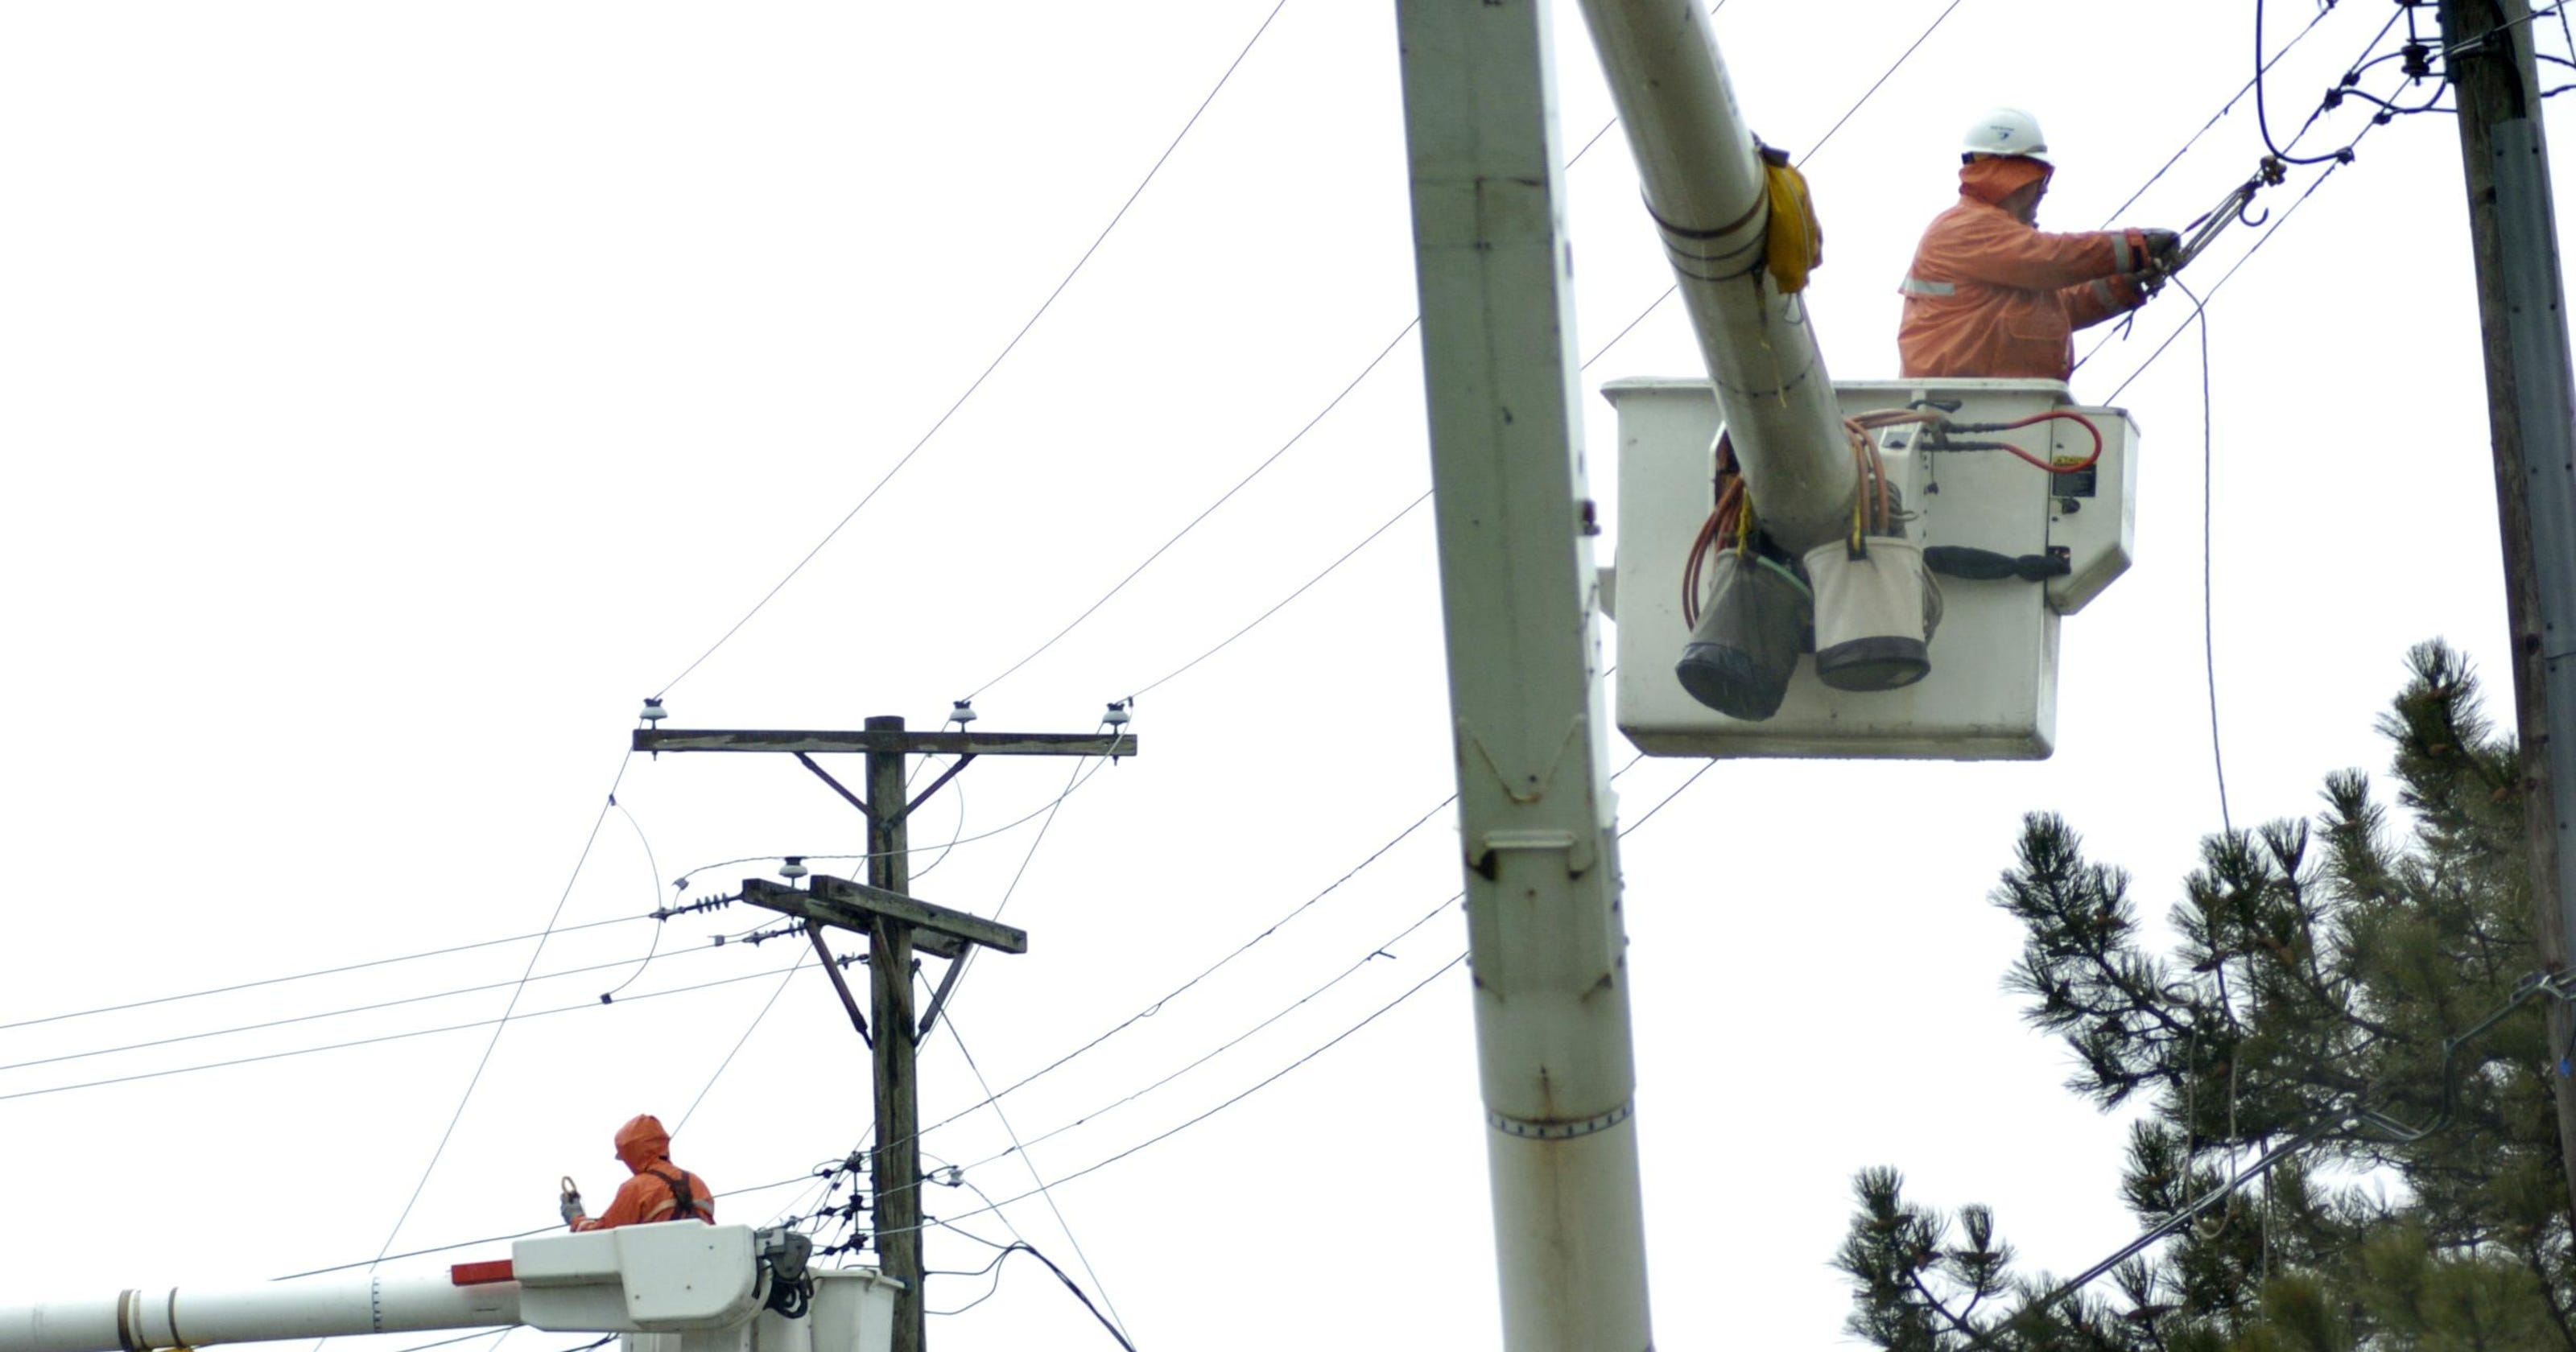 UPDATED: High winds cause many power outages